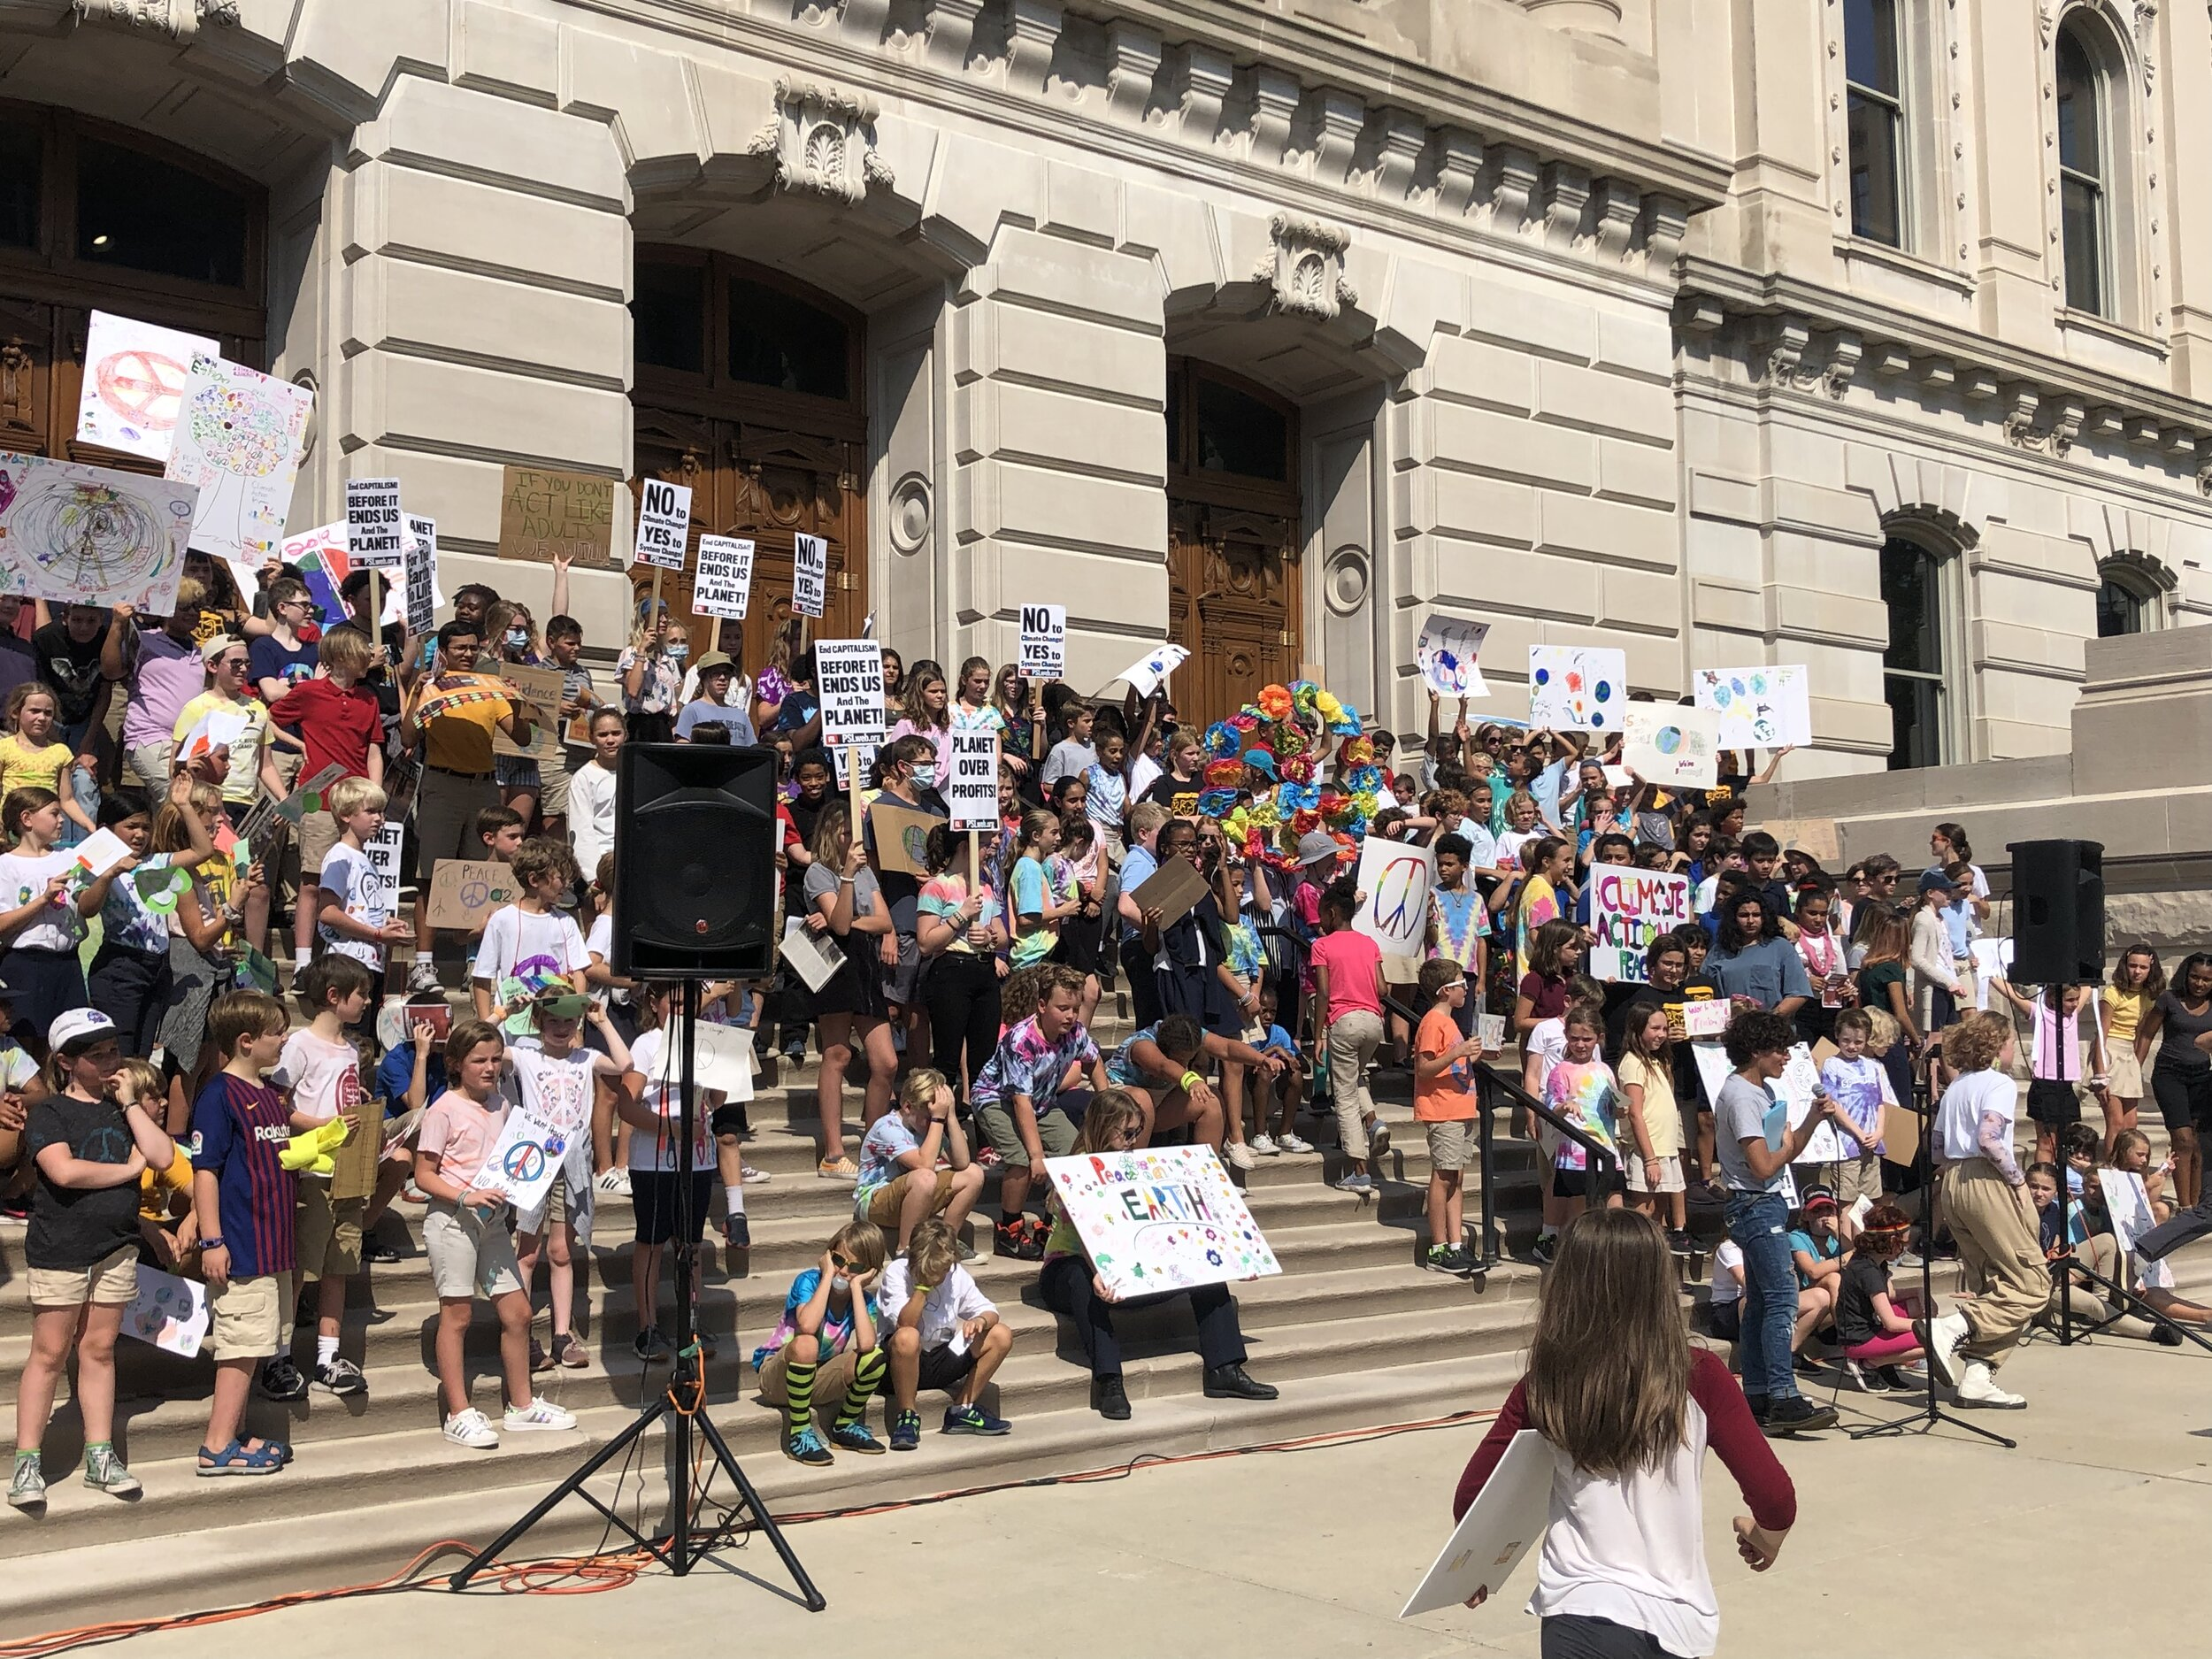 While Brebeuf's school based strike was happening, this was the scene downtown Indy at the Statehouse.